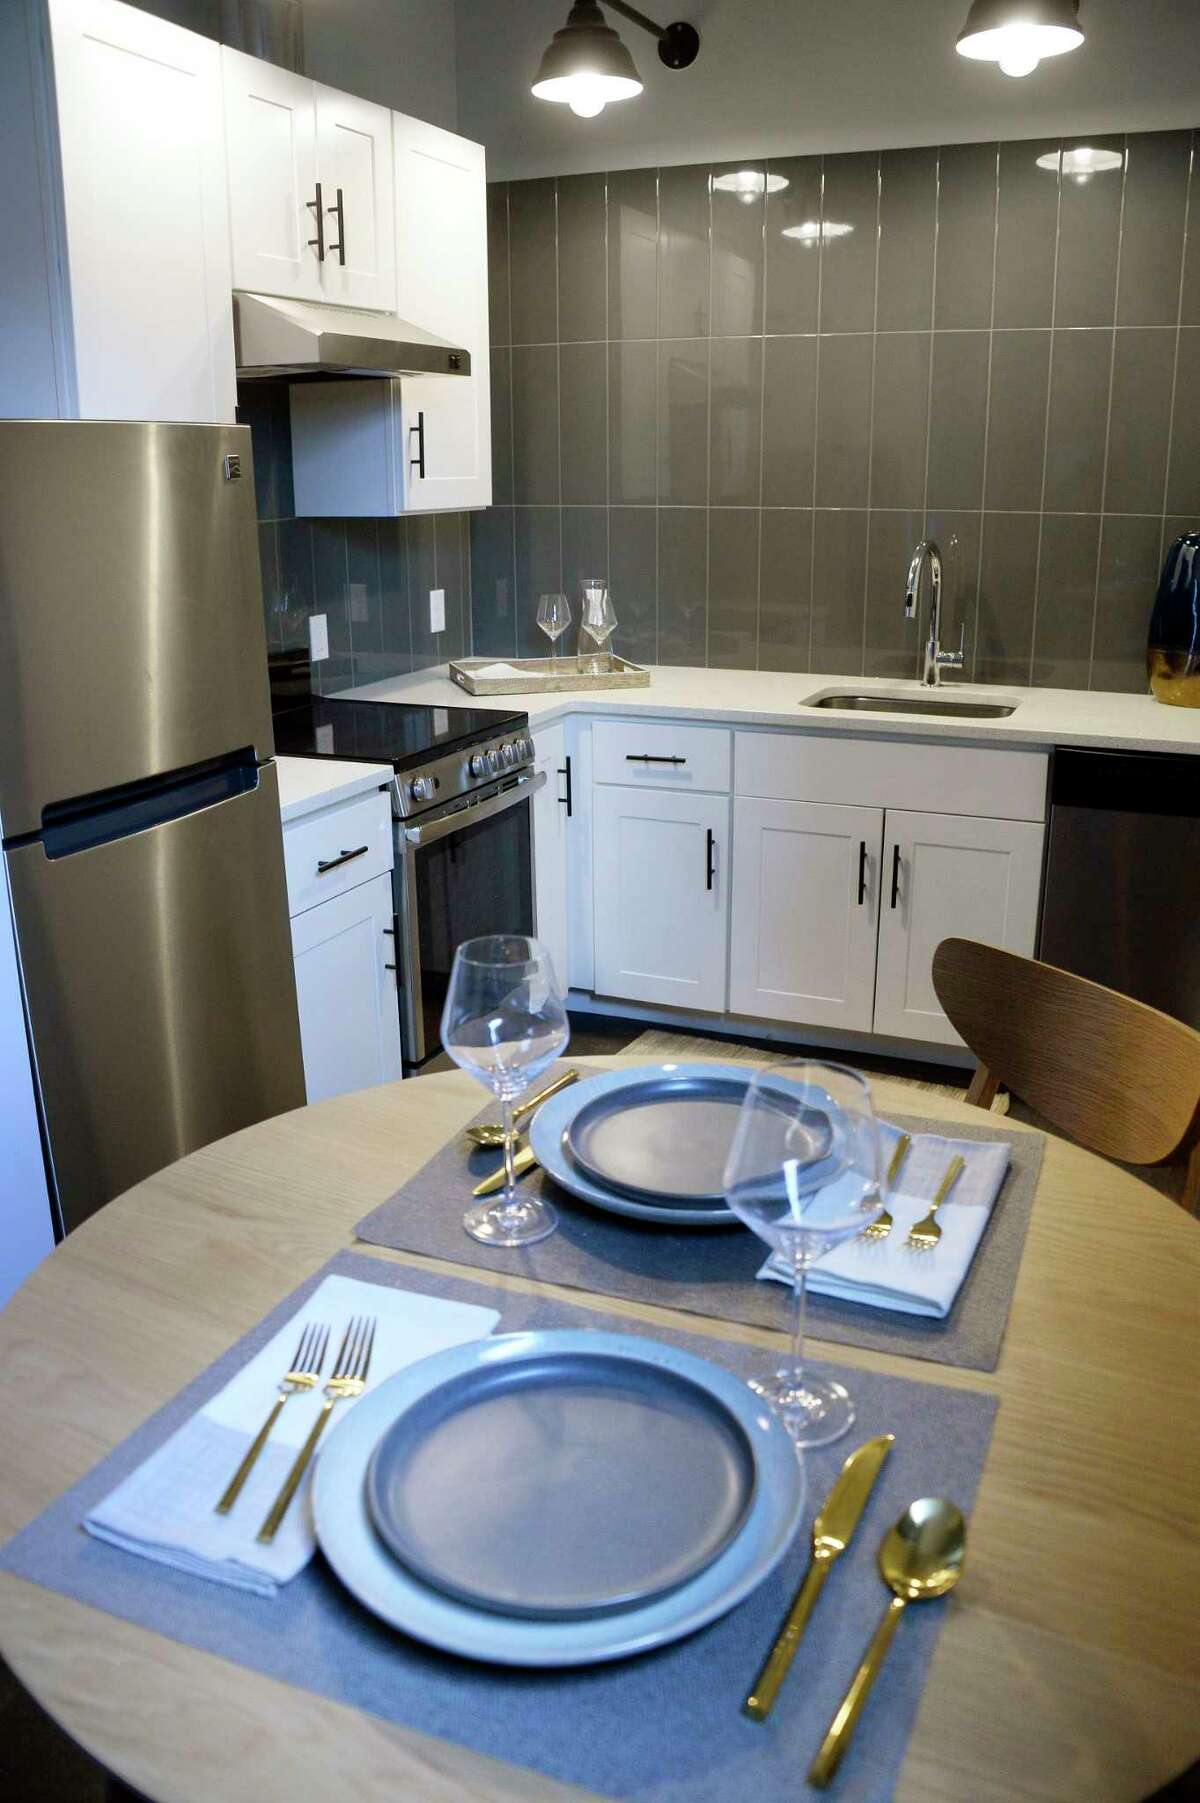 Dinette and kitchen in a model studio apartment at the @HudsonPark apartment complex under construction Tuesday Dec. 4, 2018 in Albany, NY. Formerly the site of Long Energy and originally the Hinckel brewery, the three building complex is being converted into 75 new luxury apartments. (John Carl D'Annibale/Times Union)